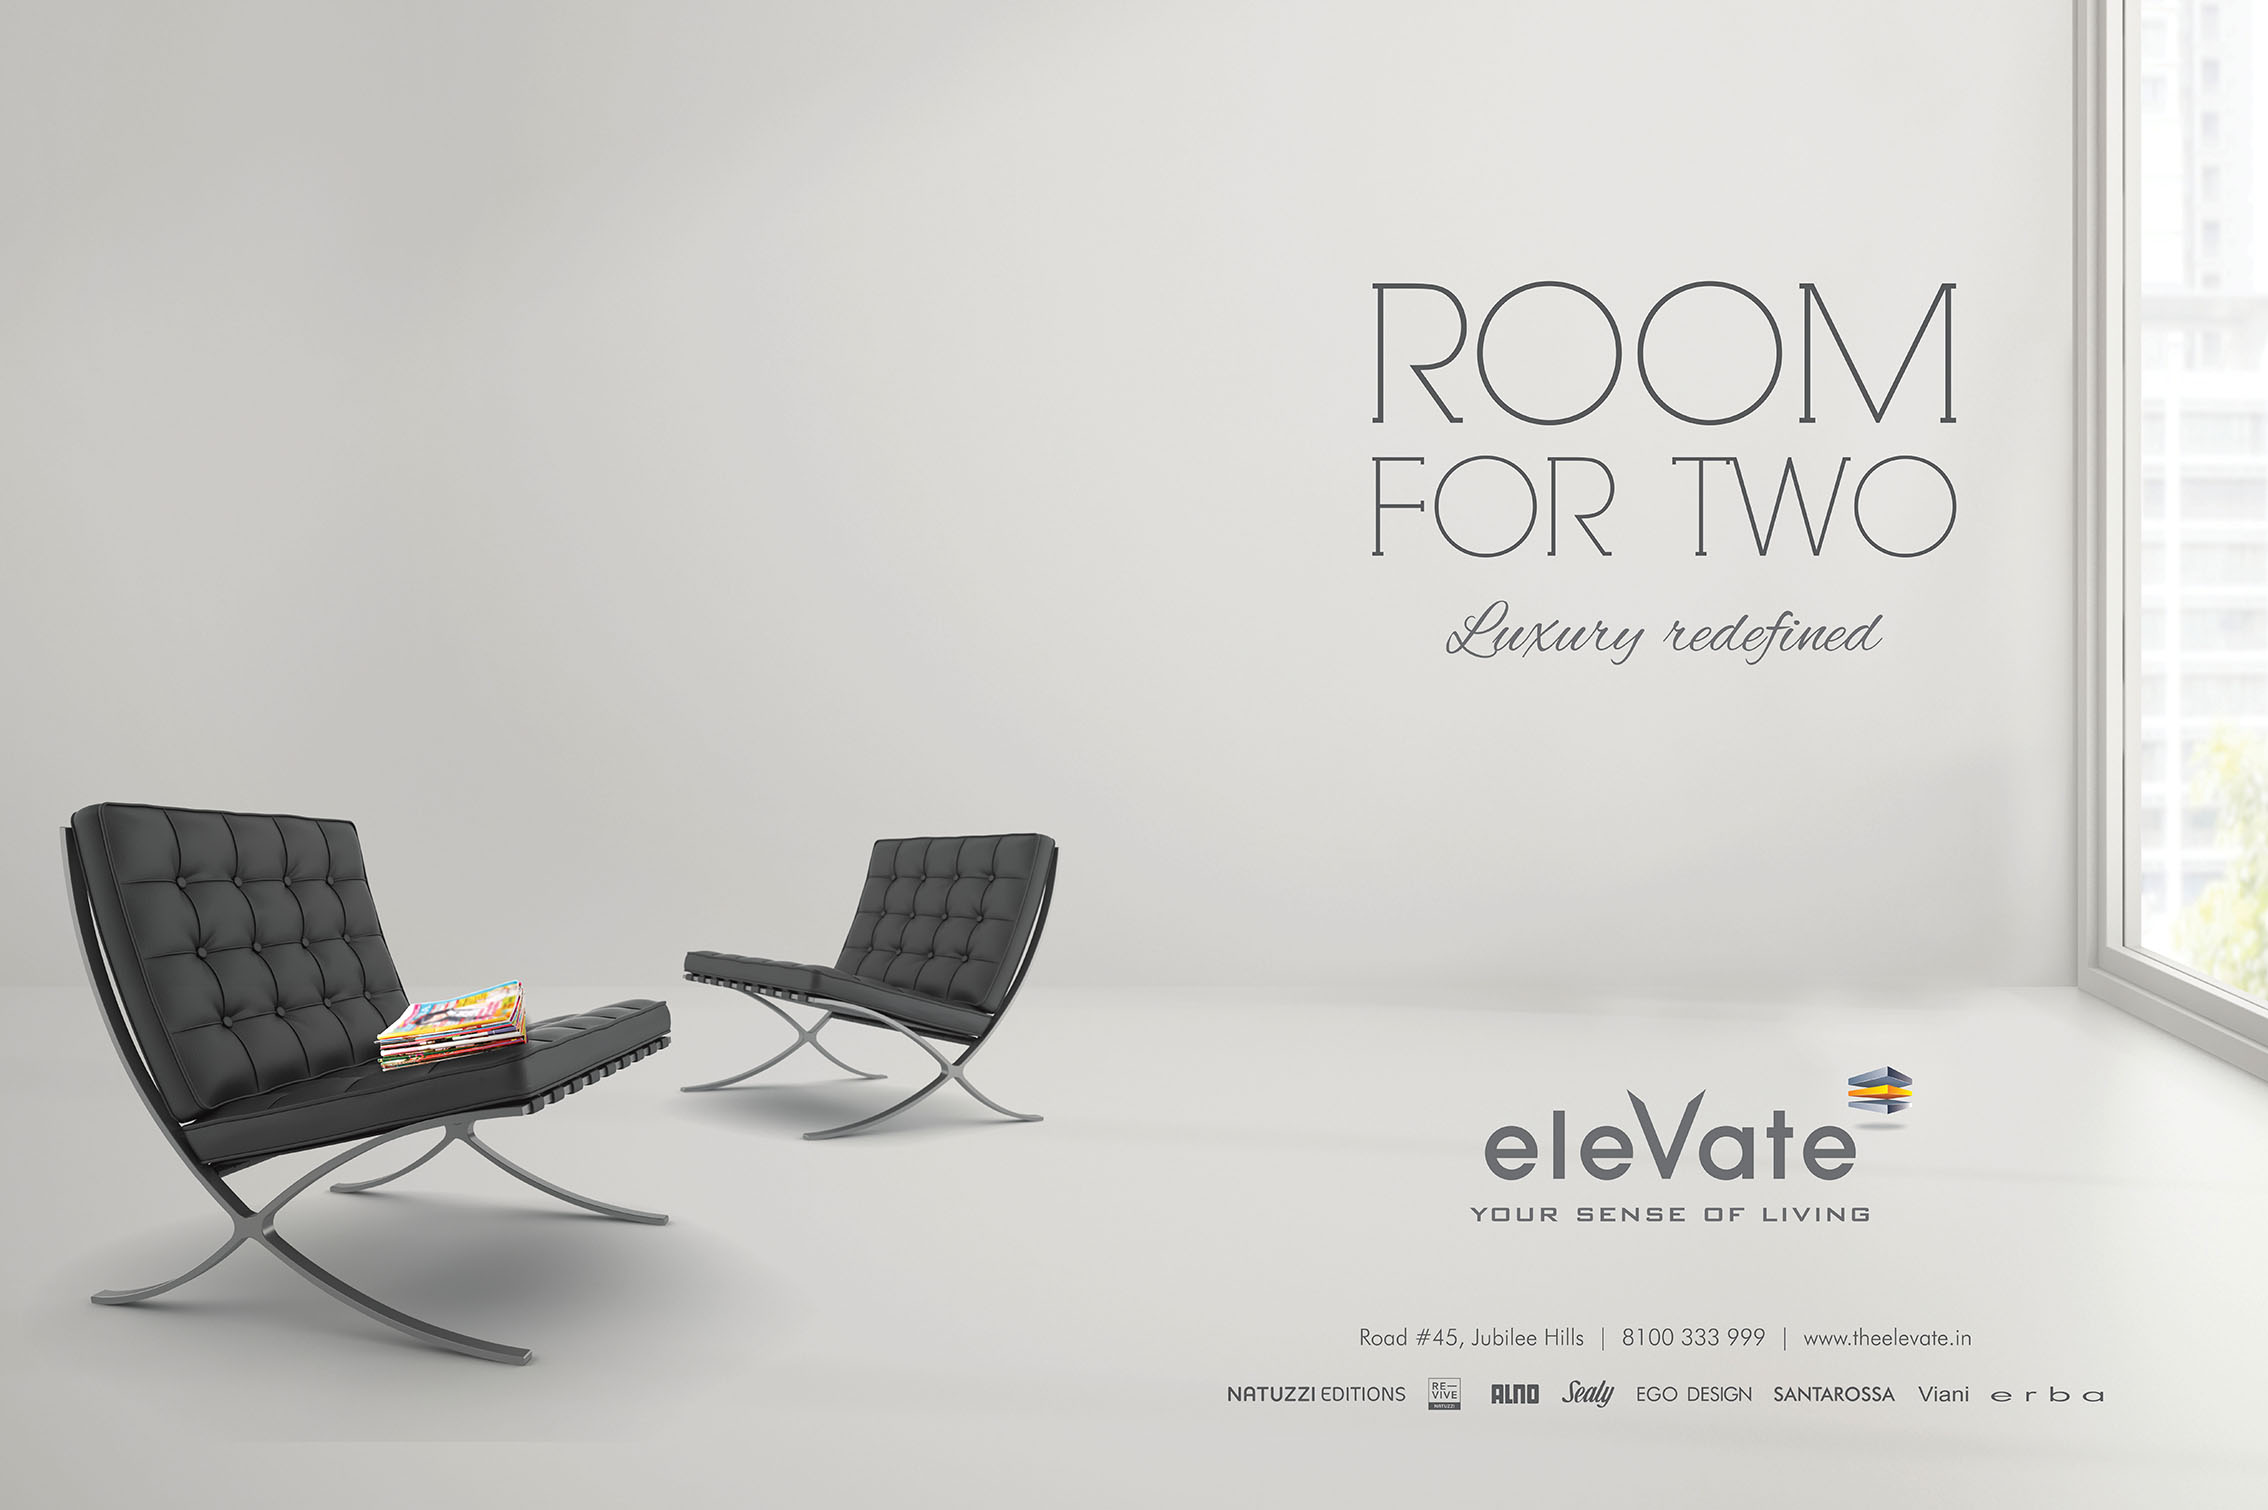 llpmlooh4ox-elevate,-best-furniture-ad-campaign,-what's-in-a-name-creatives-(2)-min